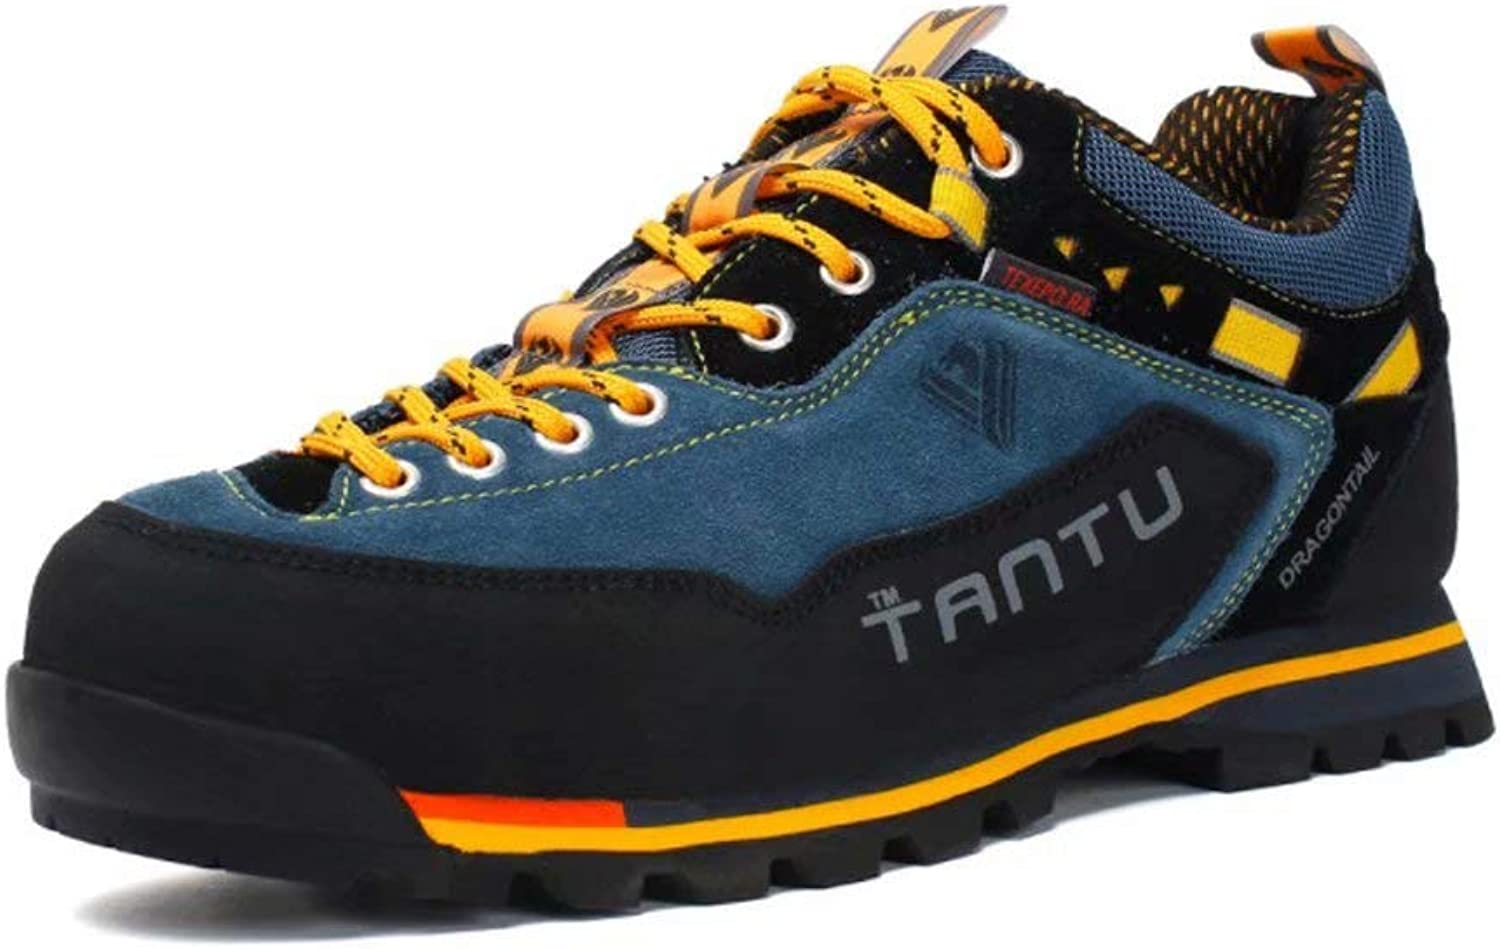 JHY Fashion Hiking Boots Mens Women High top Sneakers Autumn Winter Outdoor Trekking Waterproof Athletic shoes